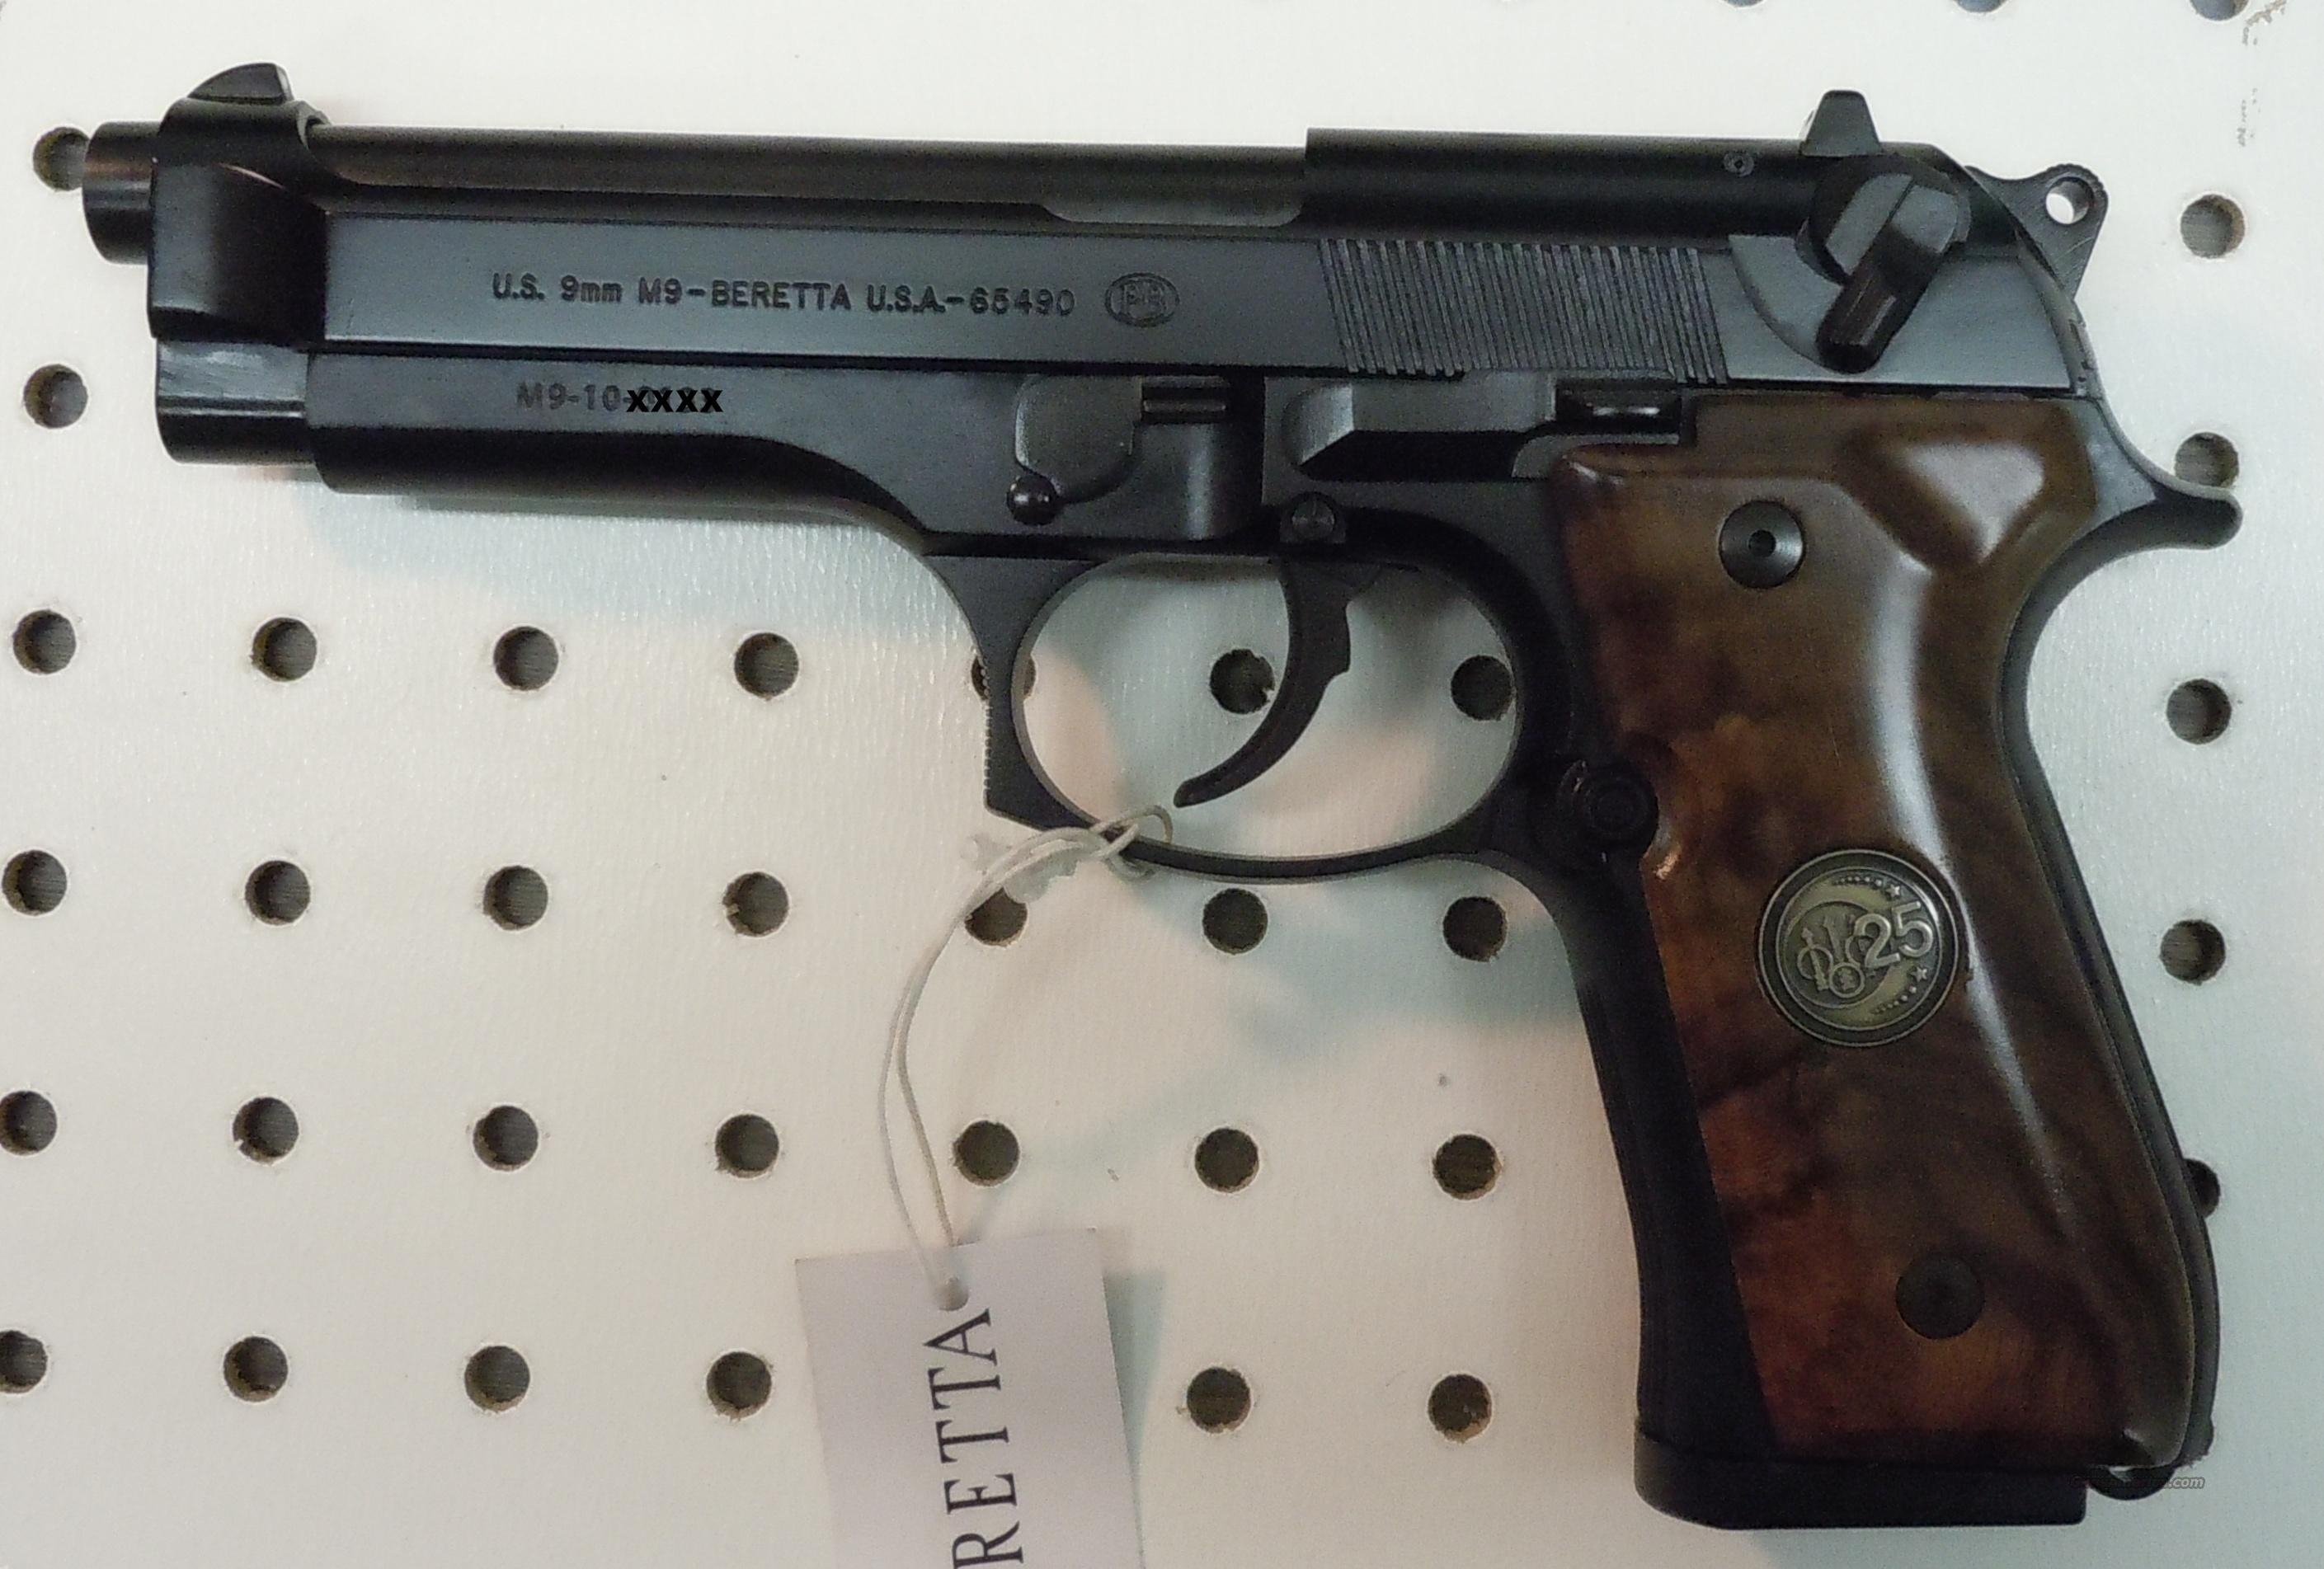 BERETTA M9 25TH ANNIVERSARY 9MM PISTOL, WOOD GRIPS, LIMITED TO 2010 PISTOLS  Guns > Pistols > Beretta Pistols > Model 92 Series